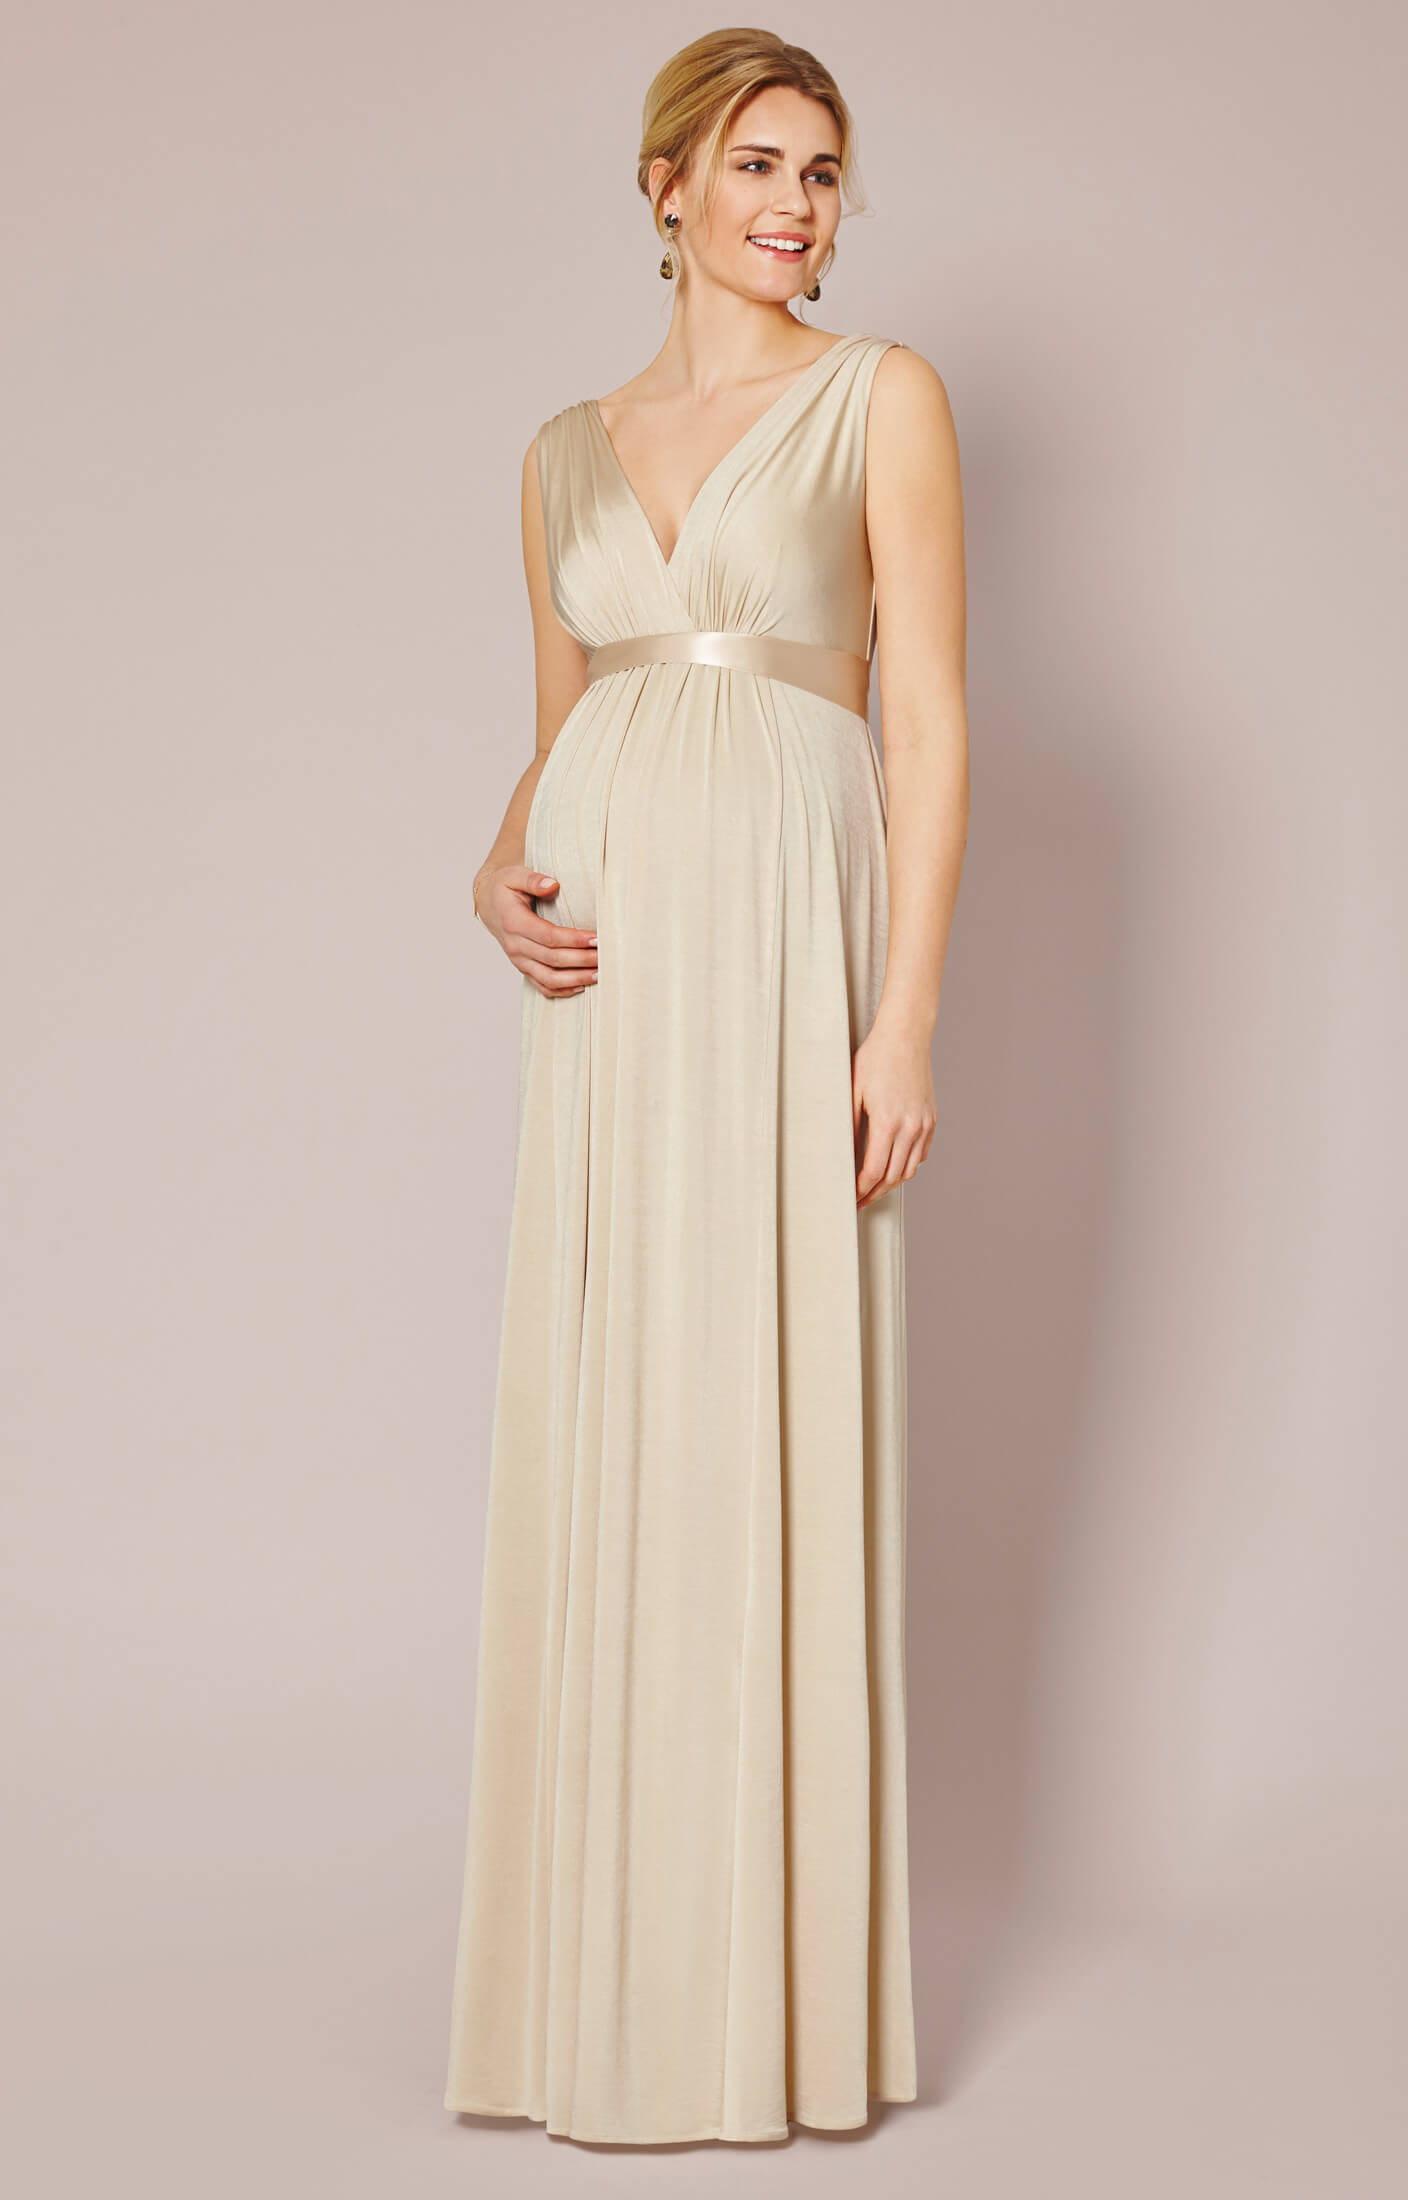 846b7954df839 Anastasia Maternity Gown (Gold Dust) - Maternity Wedding Dresses ...